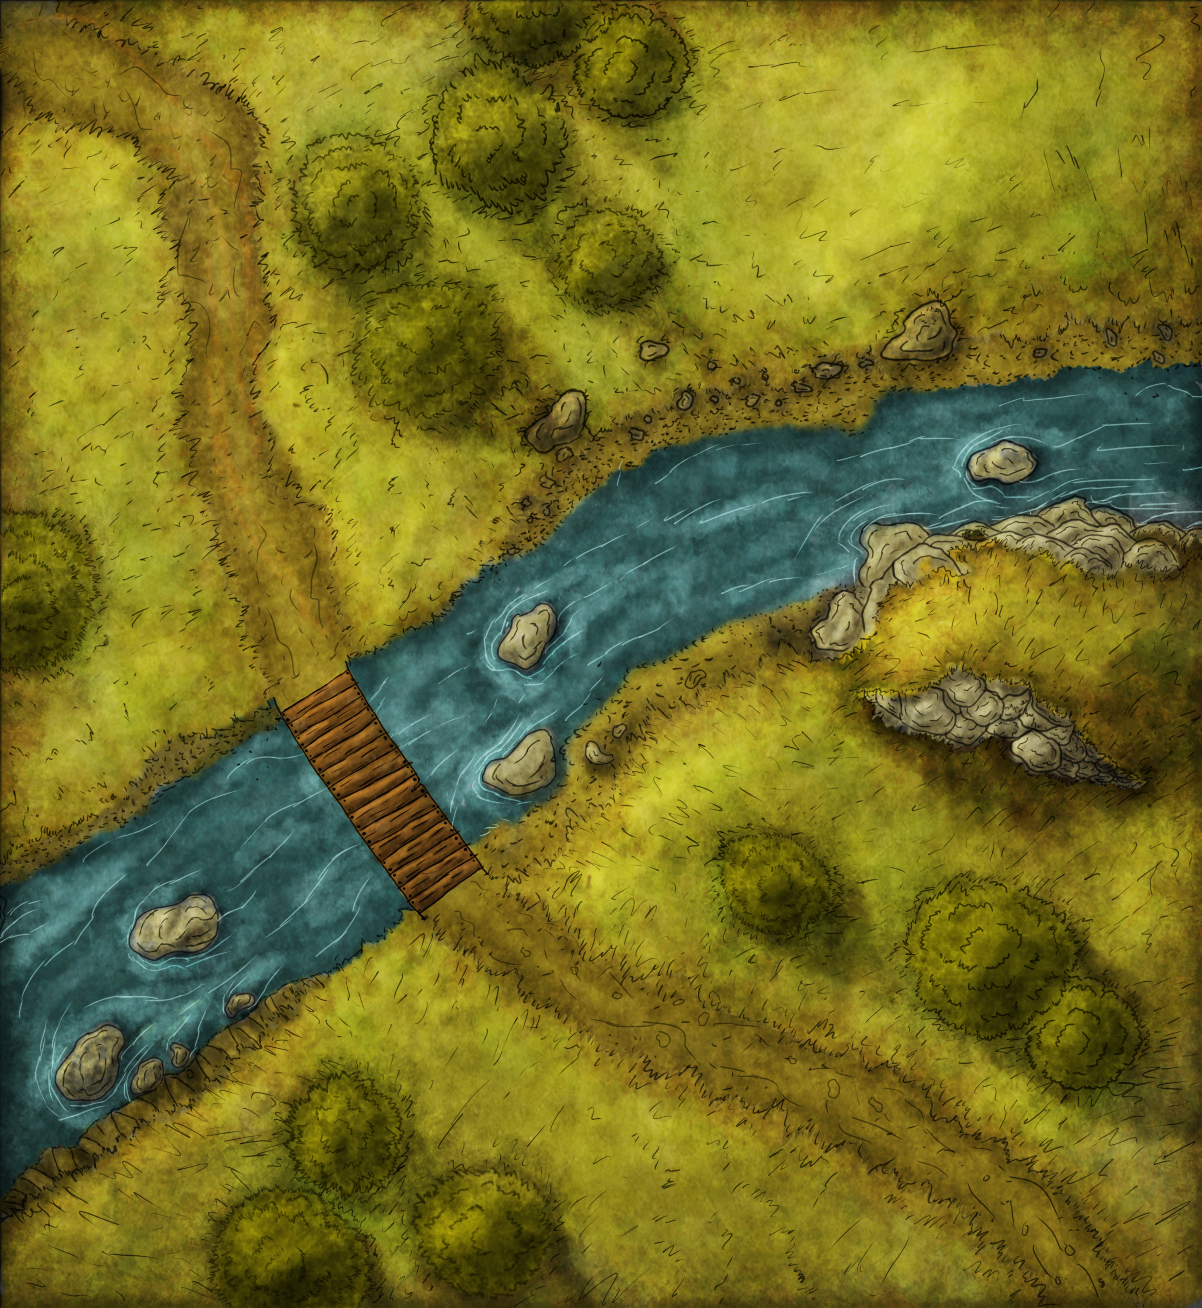 River Crossing Encounter map alternate provided by geamon